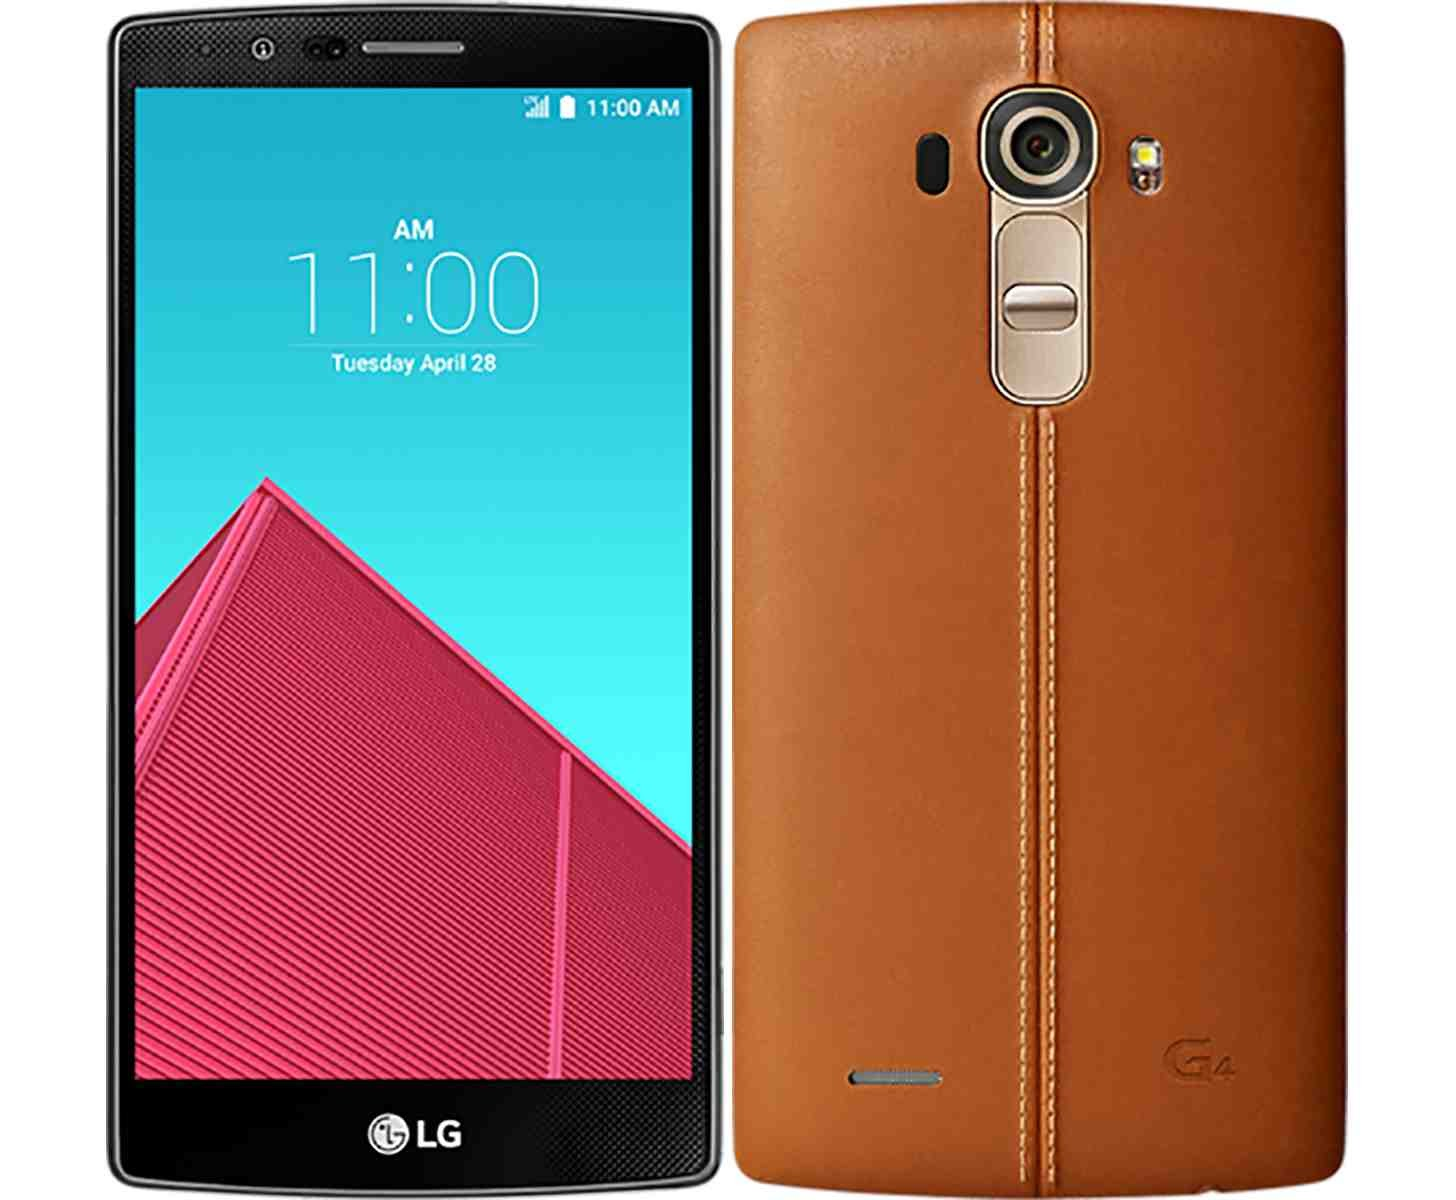 How to Update LG G4 to CM13 Android 6 0 Marshmallow ROM